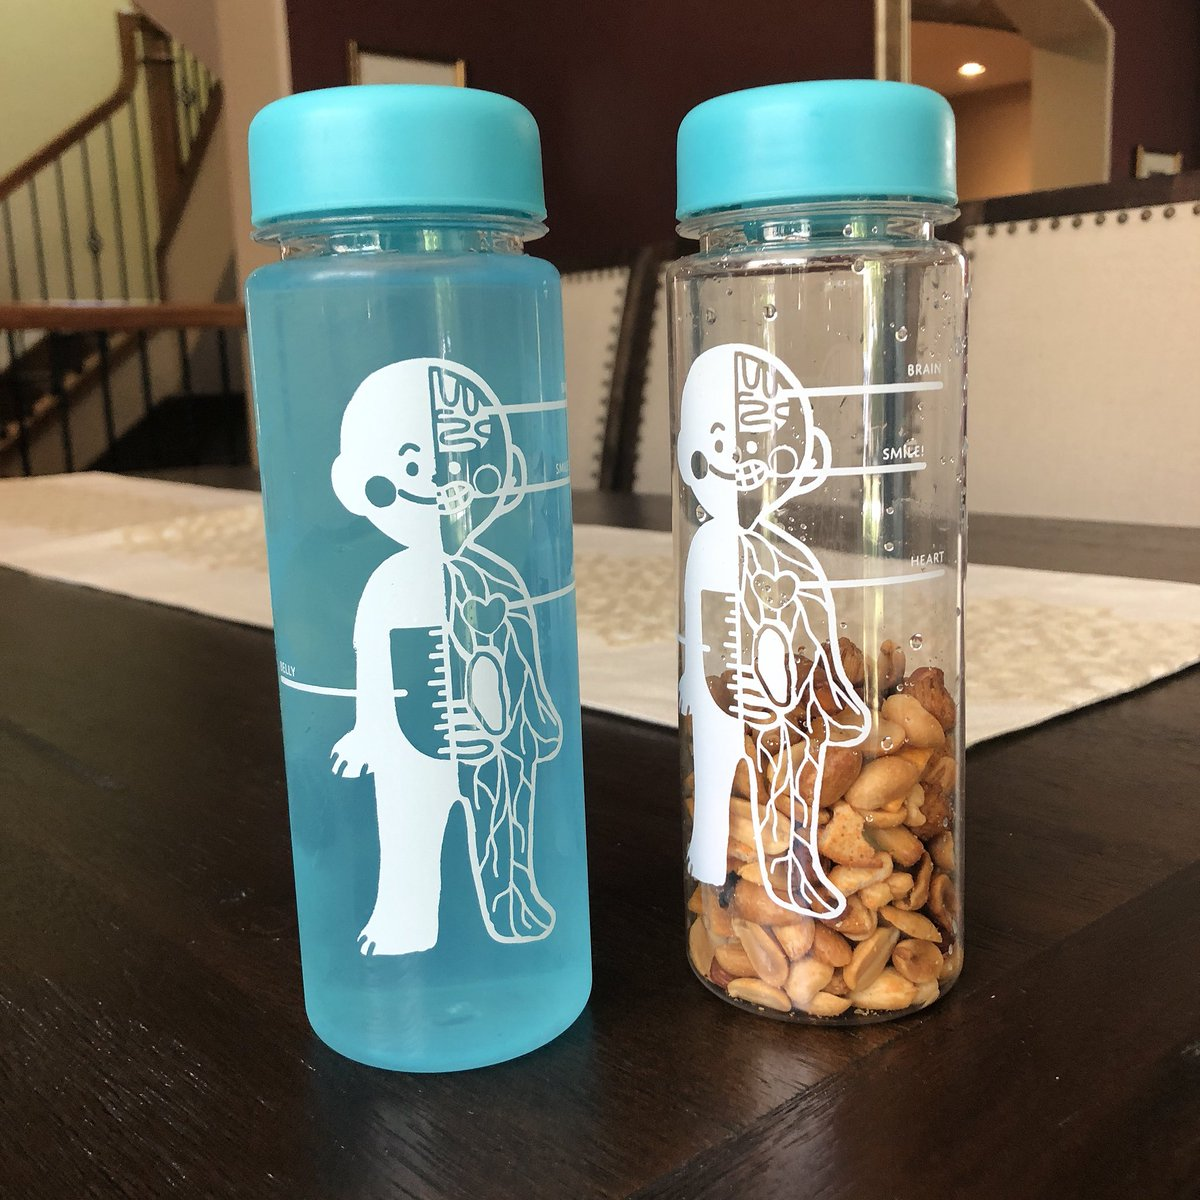 look what else is here!!!! MY WATERBOTTLES!!!! they're BPA free and great for drinks &amp; snacks!!!  <br>http://pic.twitter.com/awLVeAQzrT